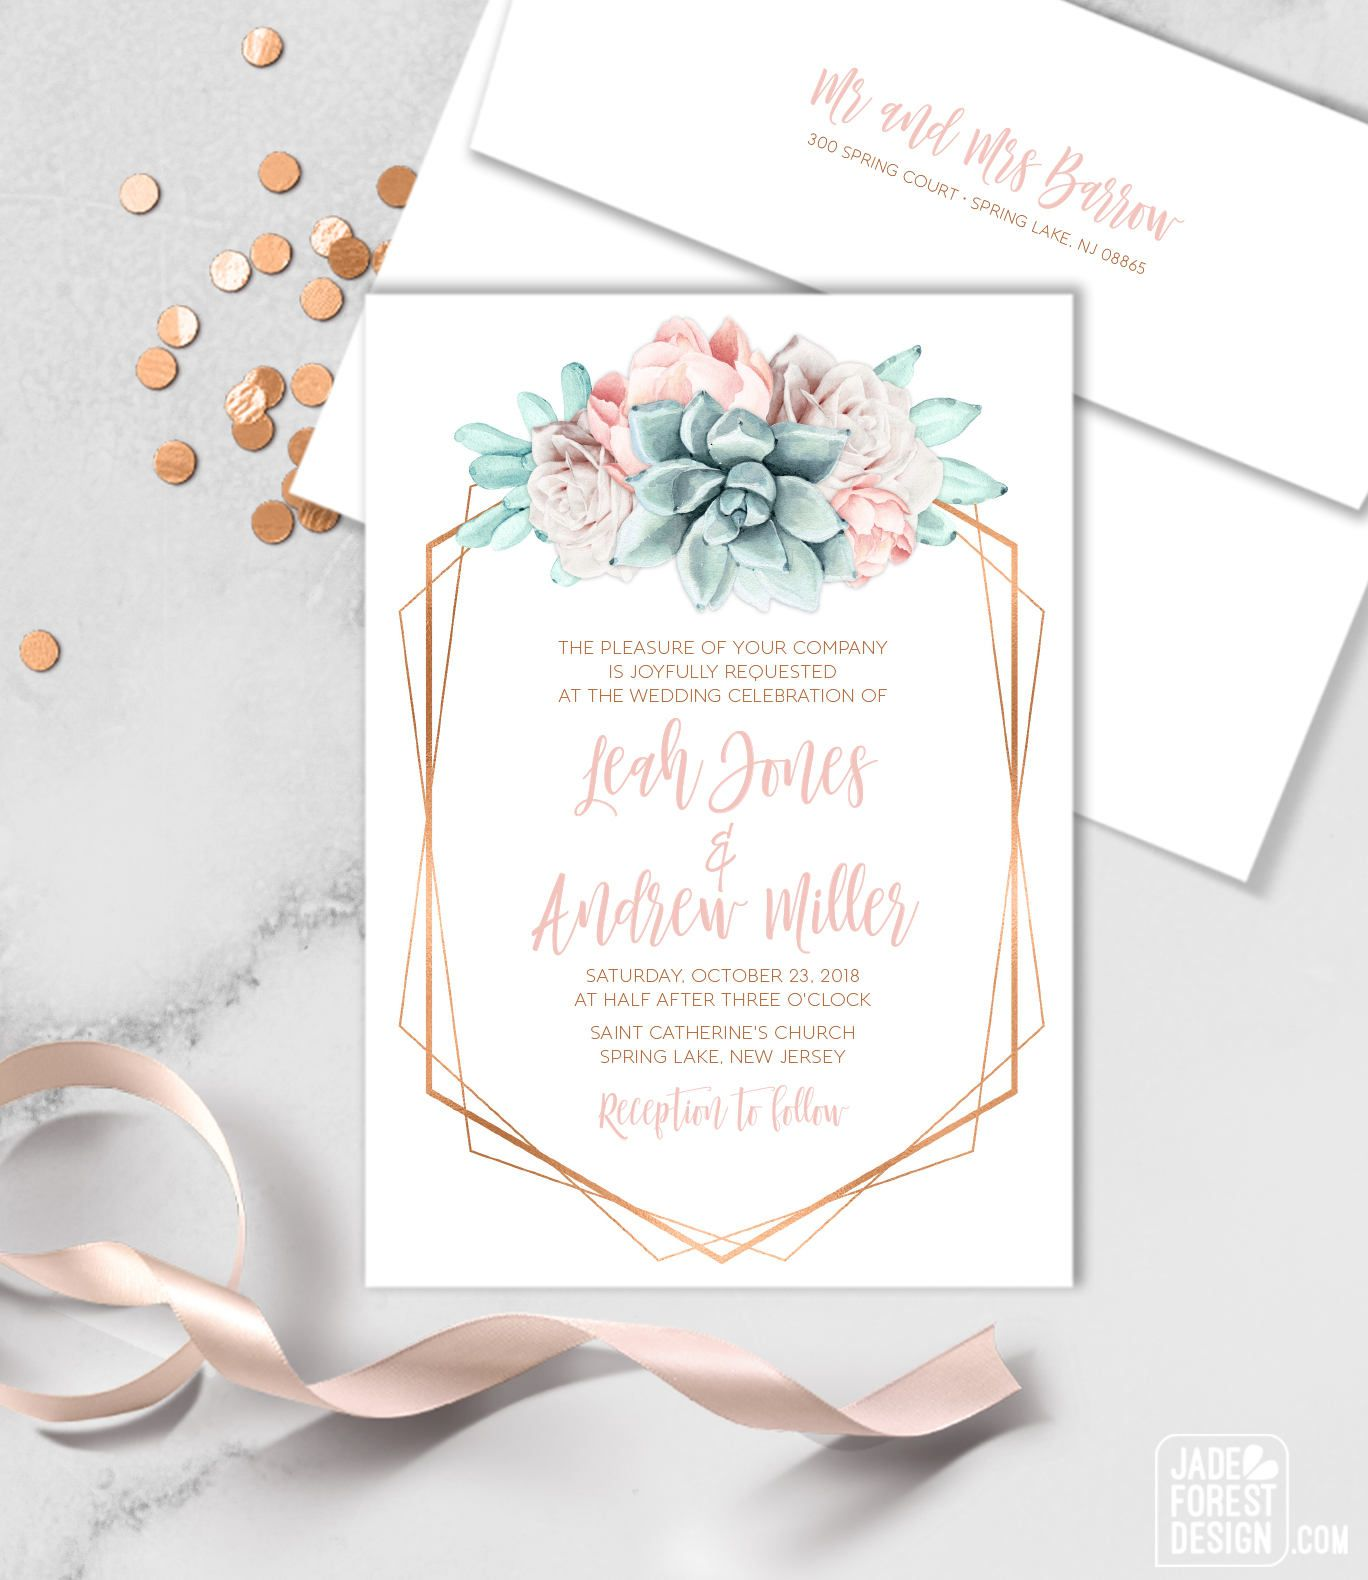 Announce your wedding with Succulents Save the date card from